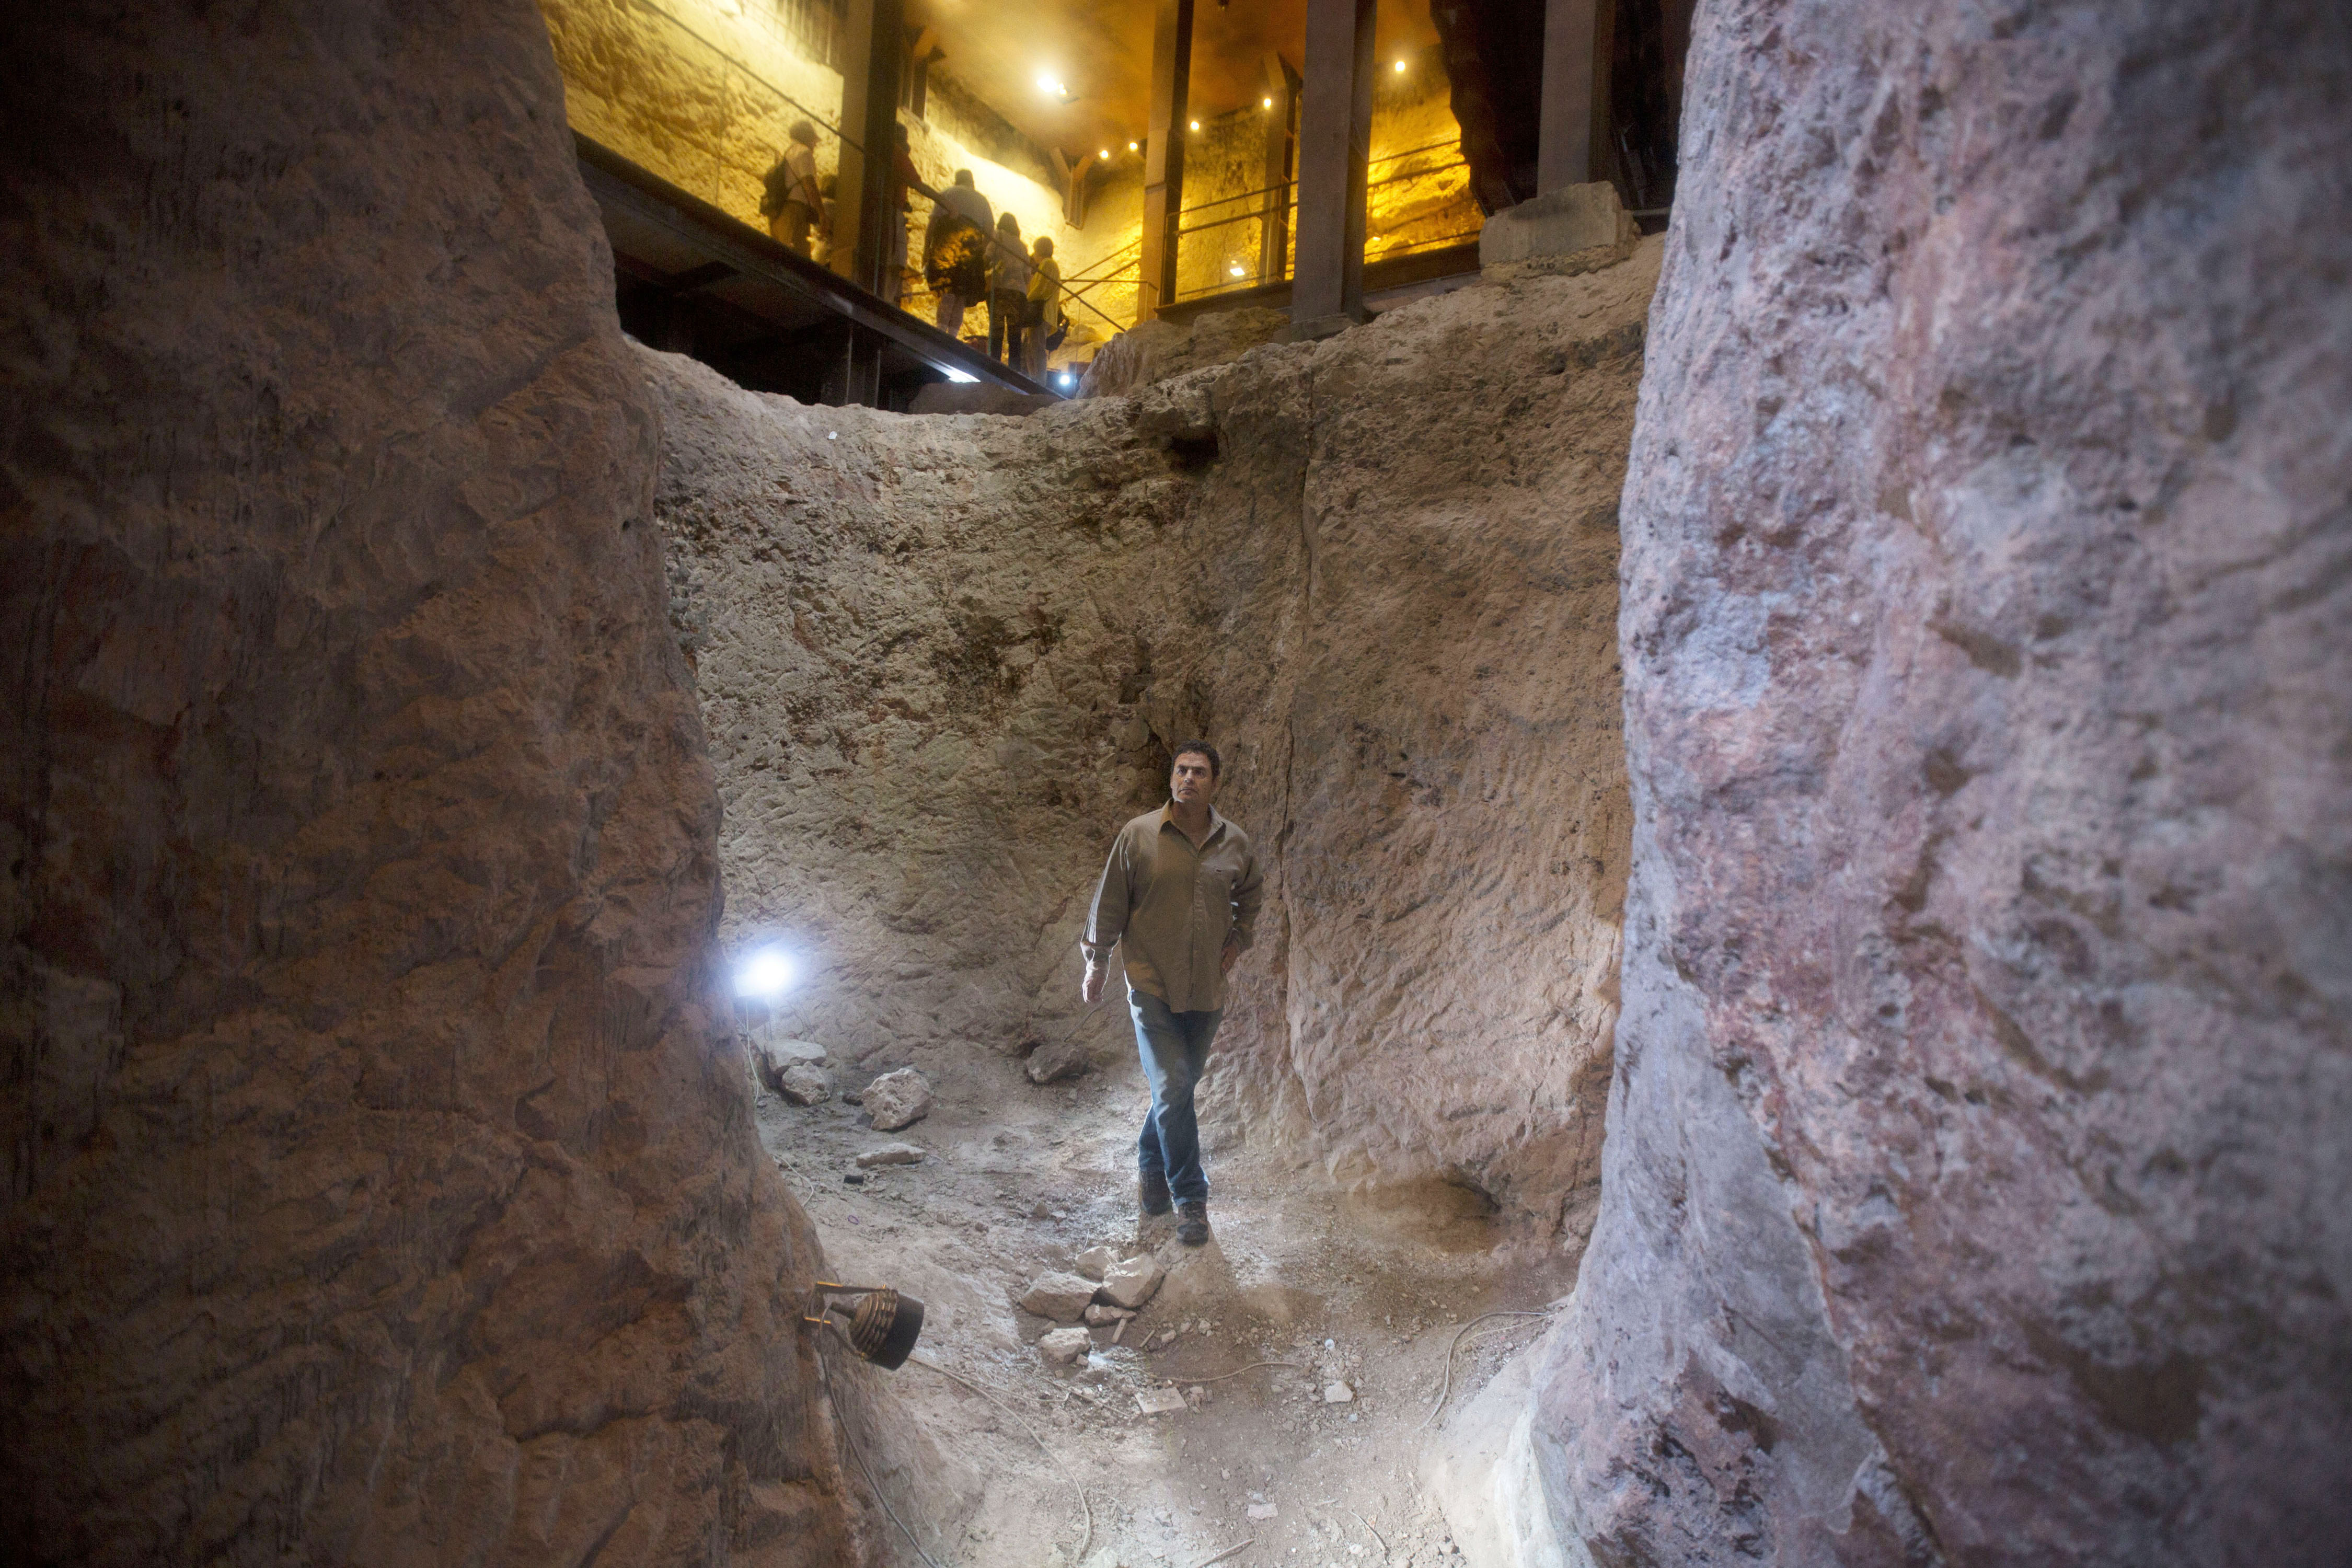 Eli Shukron, an archeologist formerly with Israel's Antiquities Authority, walks in the City of David archaeological site near Jerusalem's Old City.